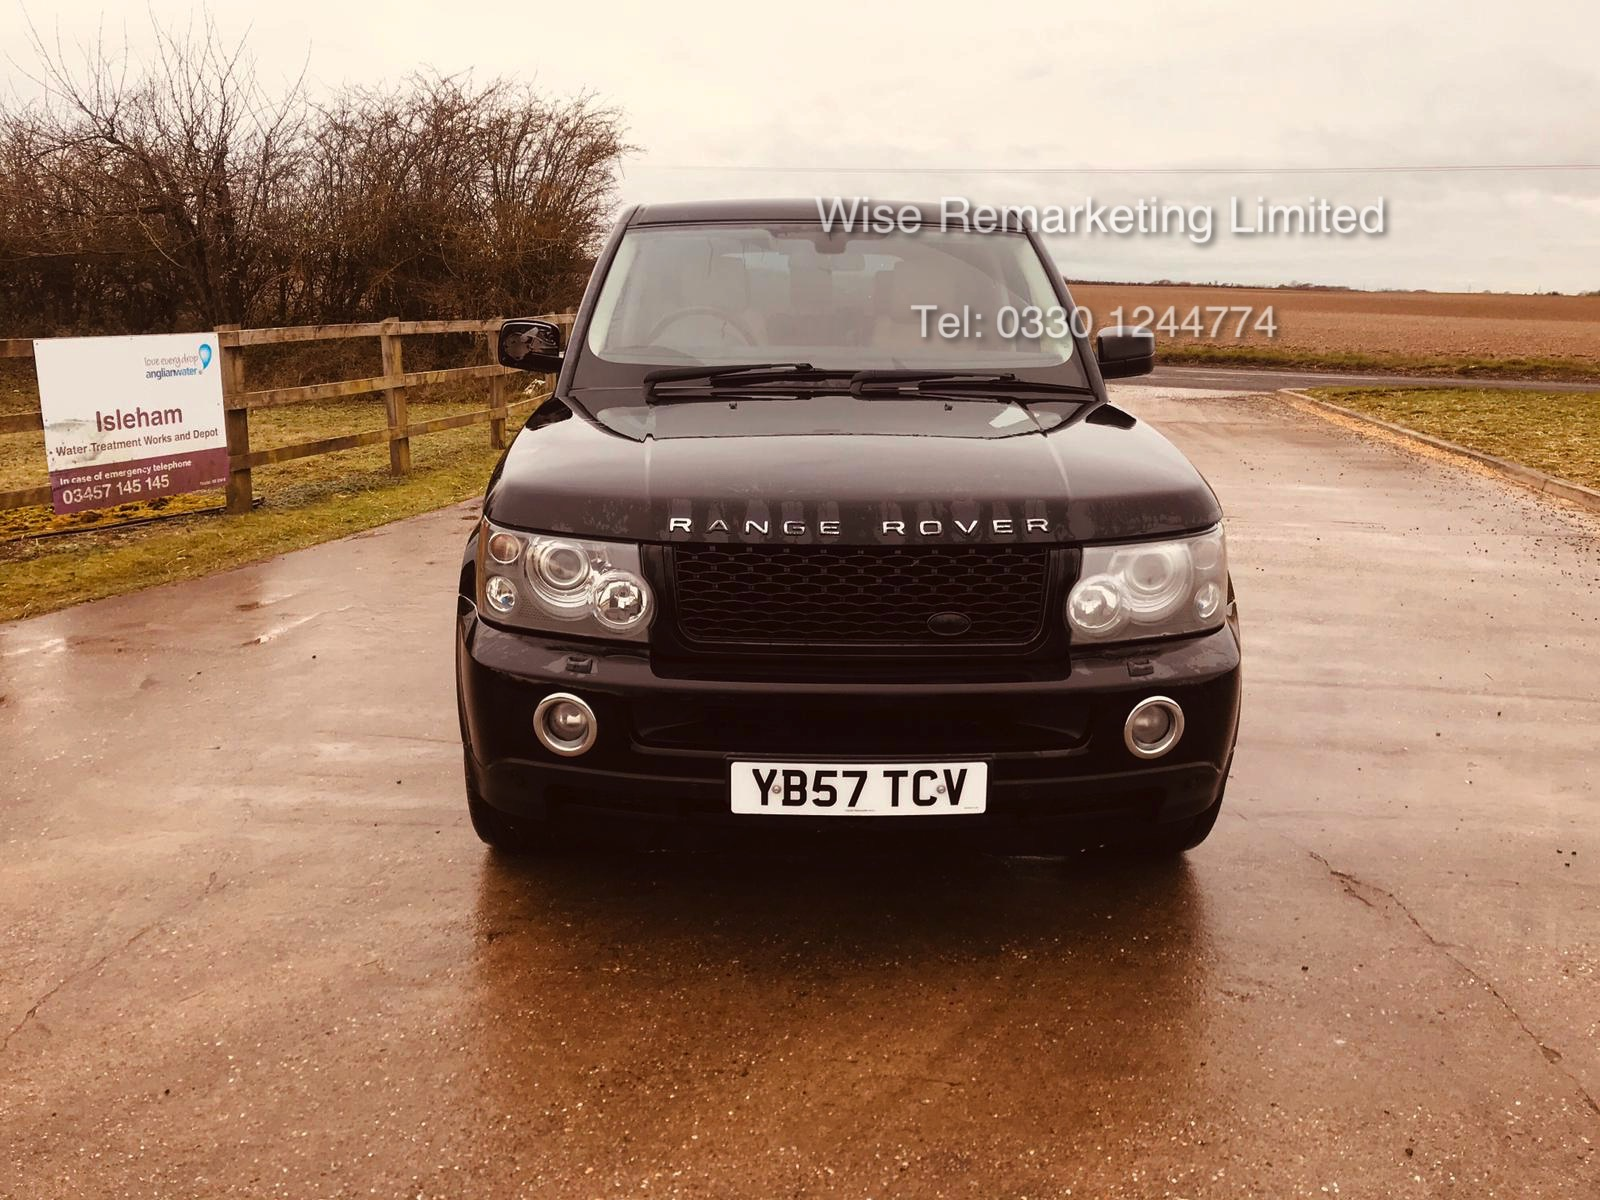 Range Rover Sport 2.7 TDV6 HSE Auto - 2008 Model - Cream Leather - Sat Nav - Heated Seats - Image 3 of 19